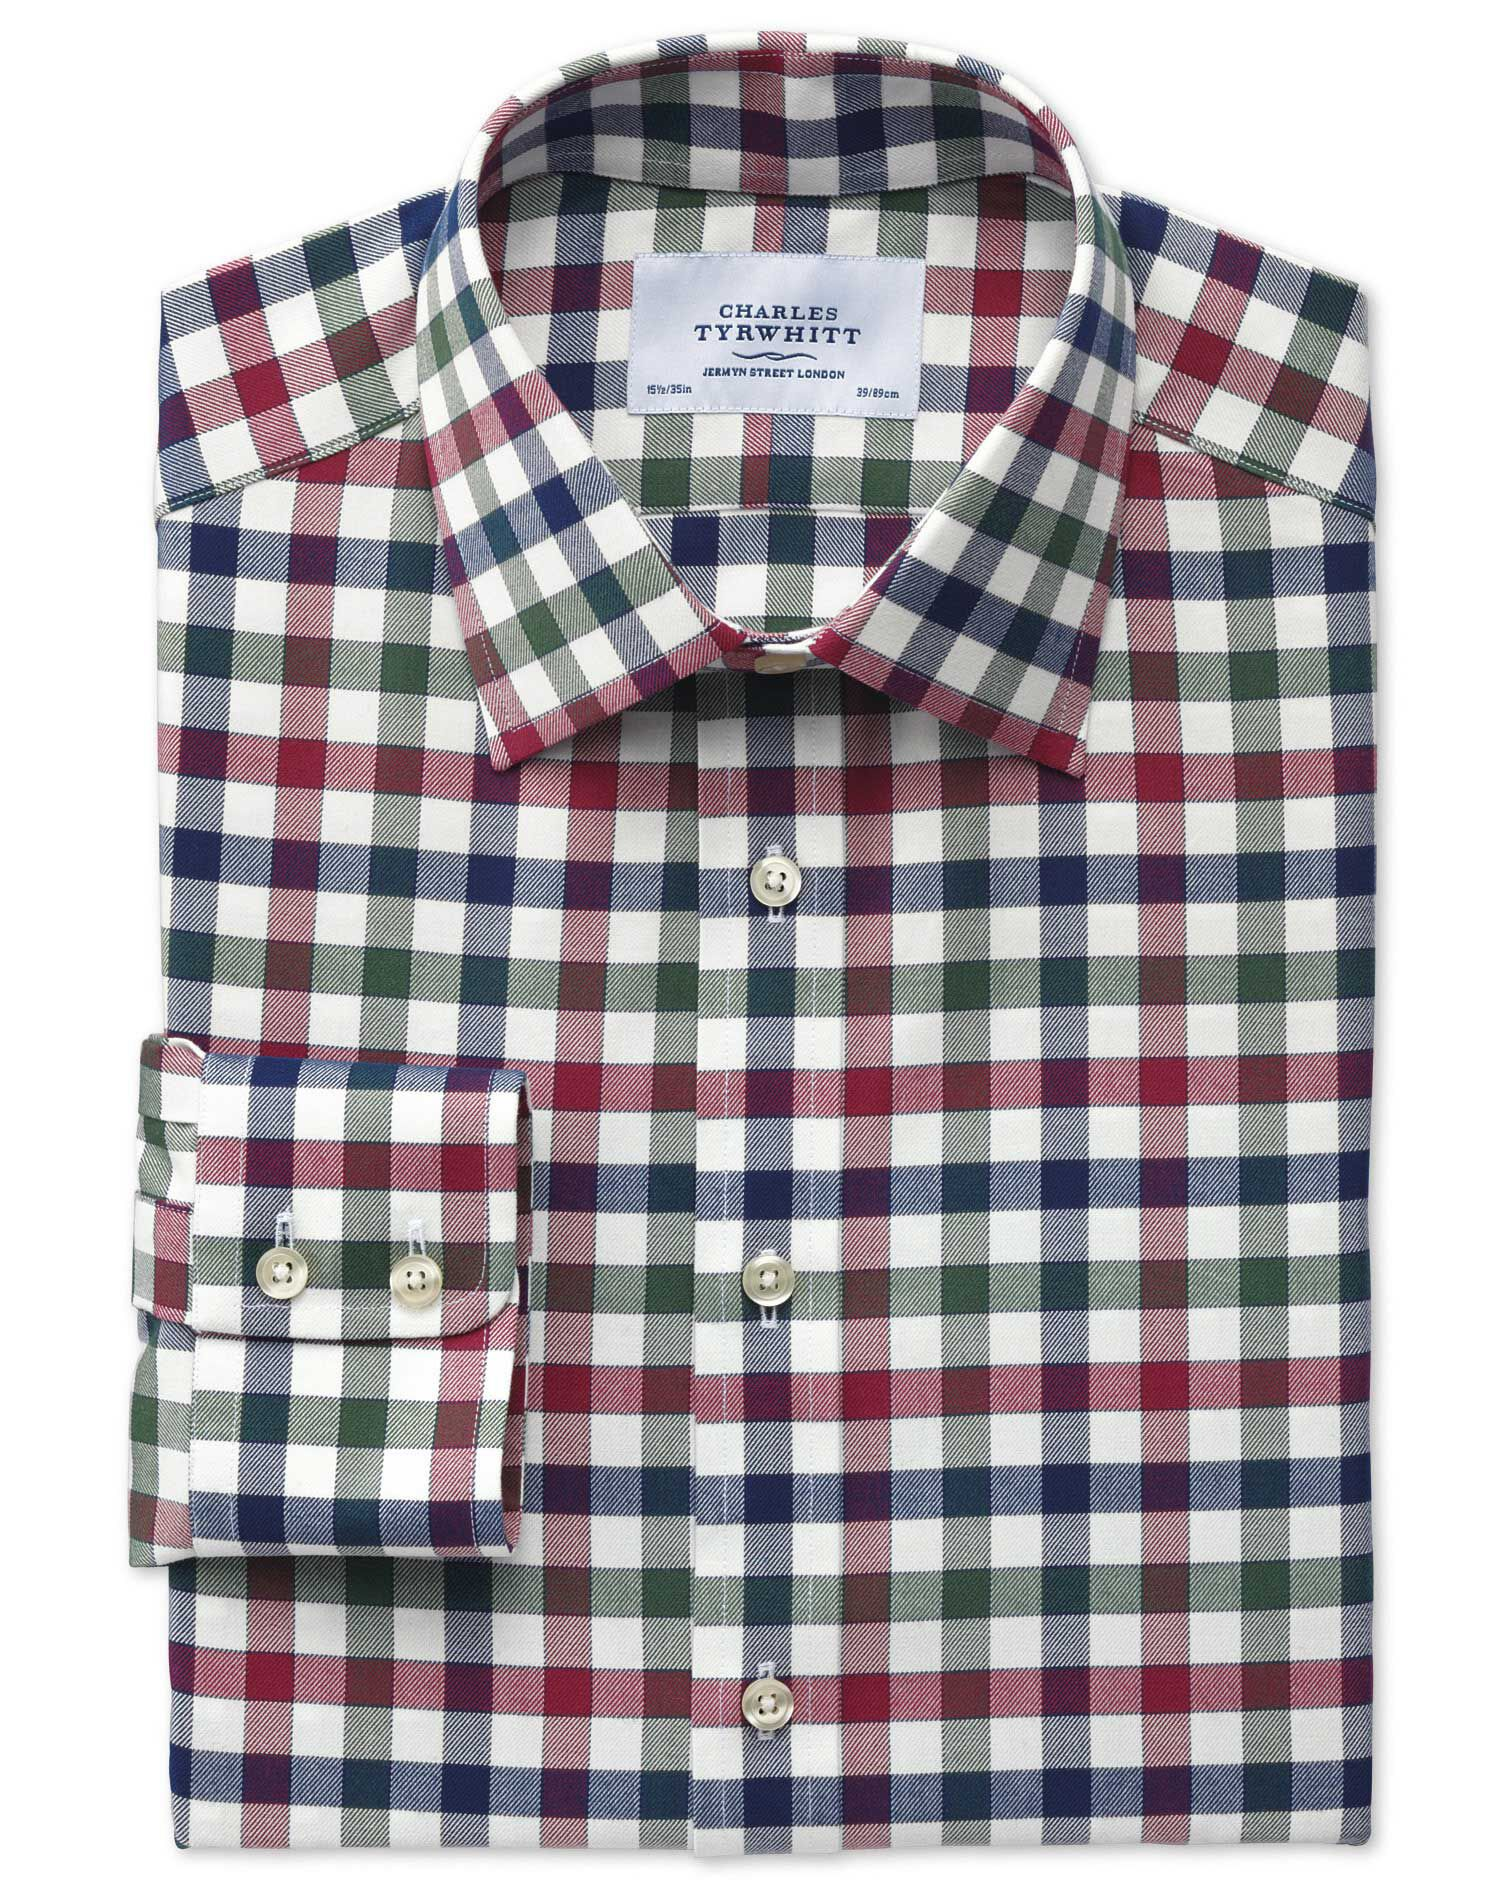 Extra Slim Fit Country Check Navy and Berry Cotton Formal Shirt Single Cuff Size 17/37 by Charles Ty